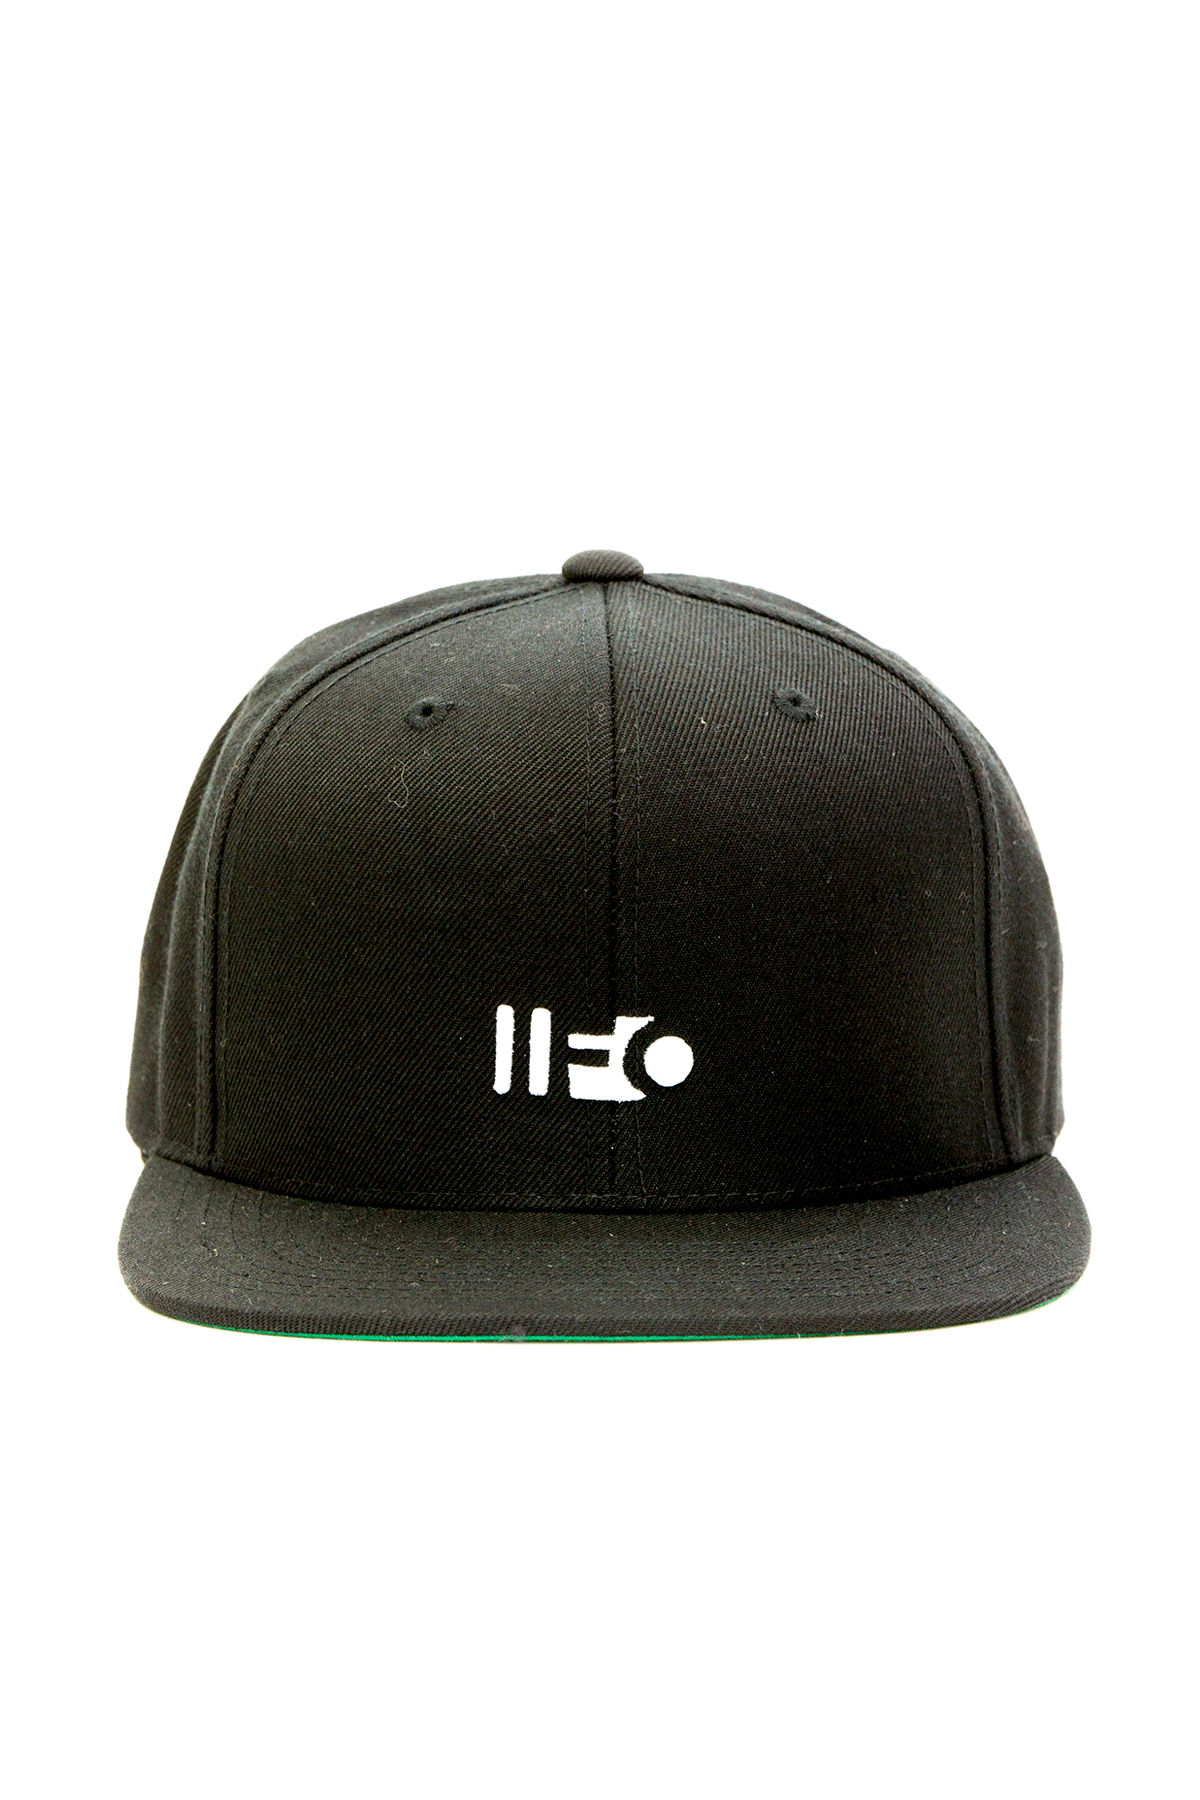 CUTOUT-LOGO-SNAPBACK-black_shop1